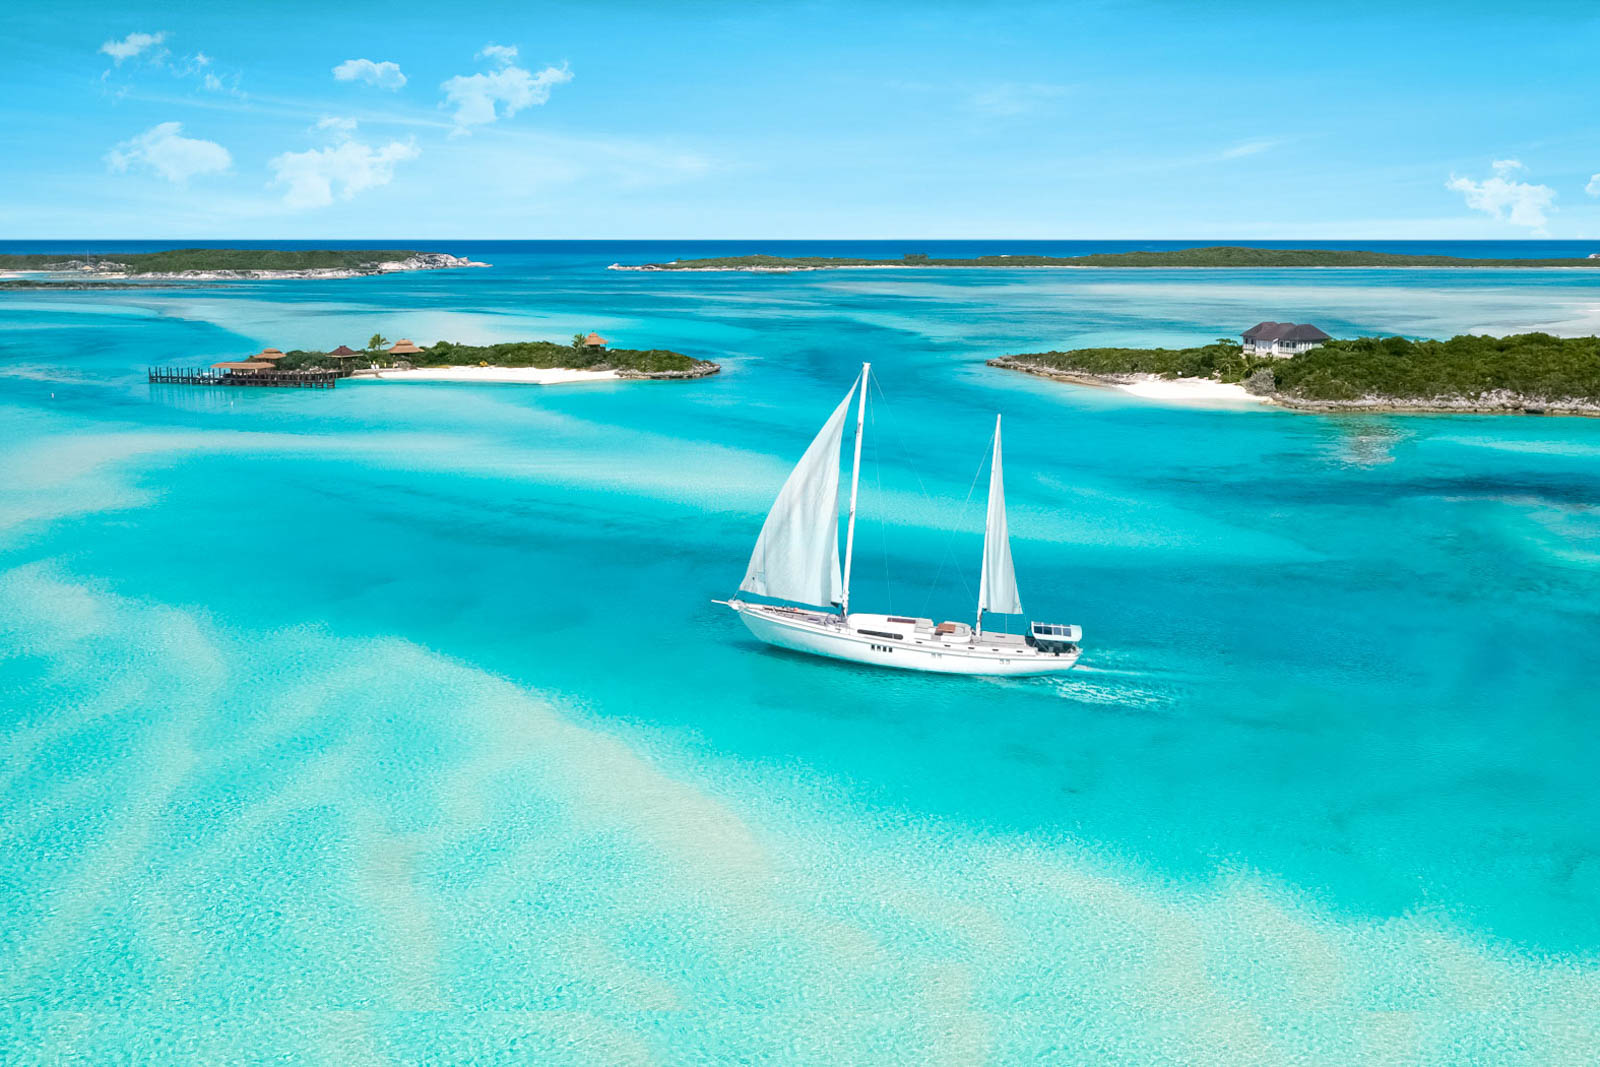 Sail through breath-taking landscapes while island hopping through the Exumas. Many of the best things to do in the Bahamas require extra over-water exploration on your Bahamas day trip.